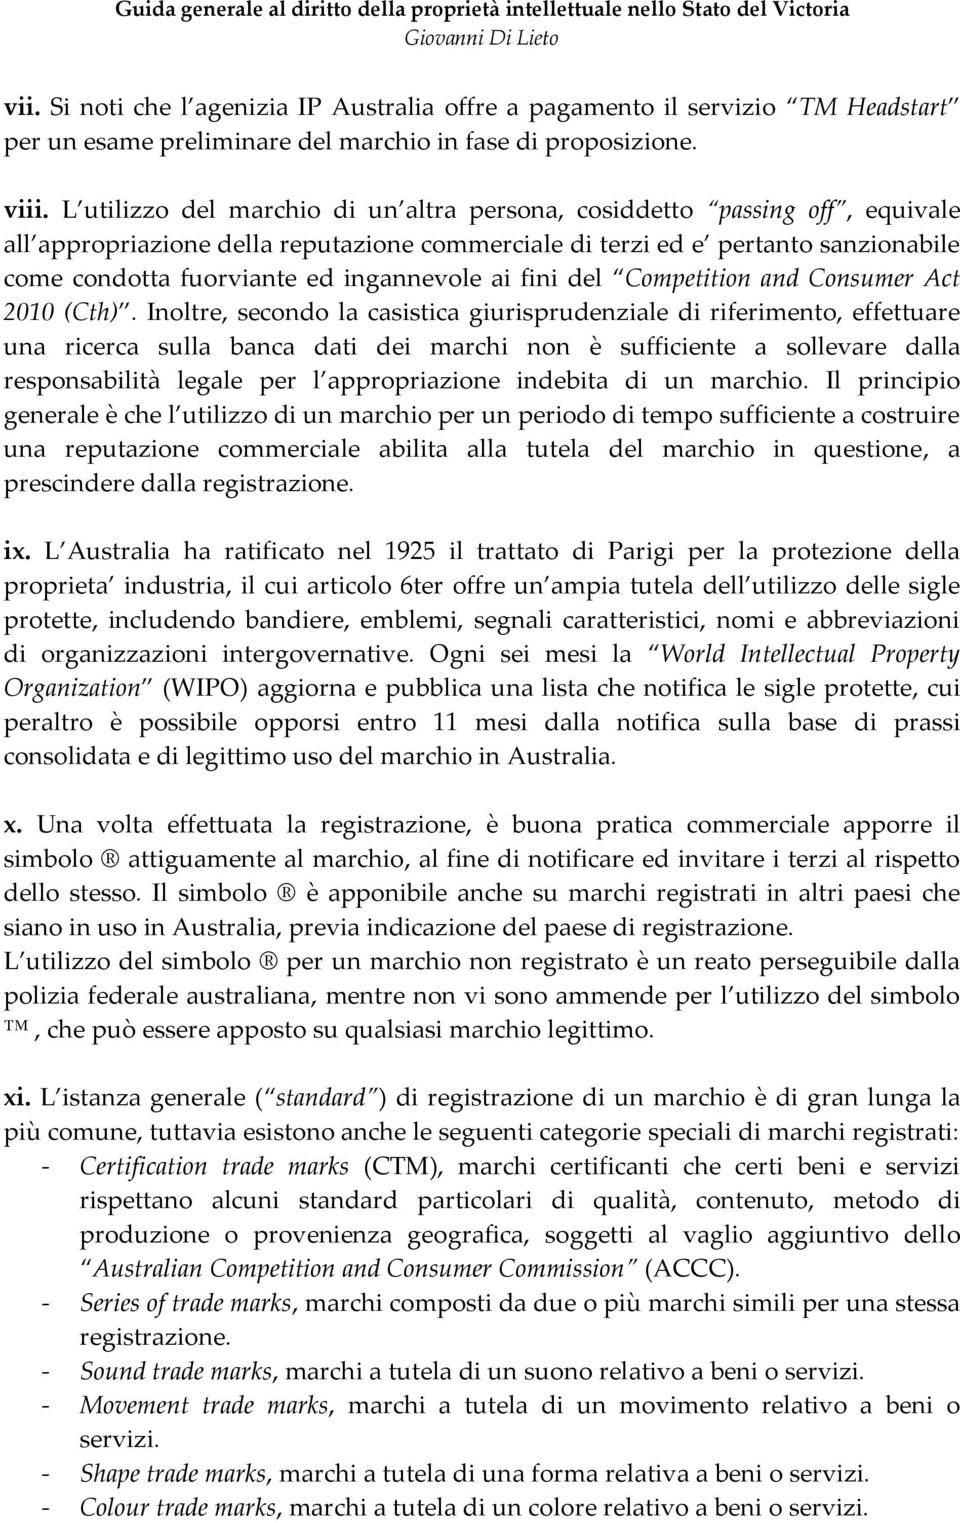 ingannevole ai fini del Competition and Consumer Act 2010 (Cth).